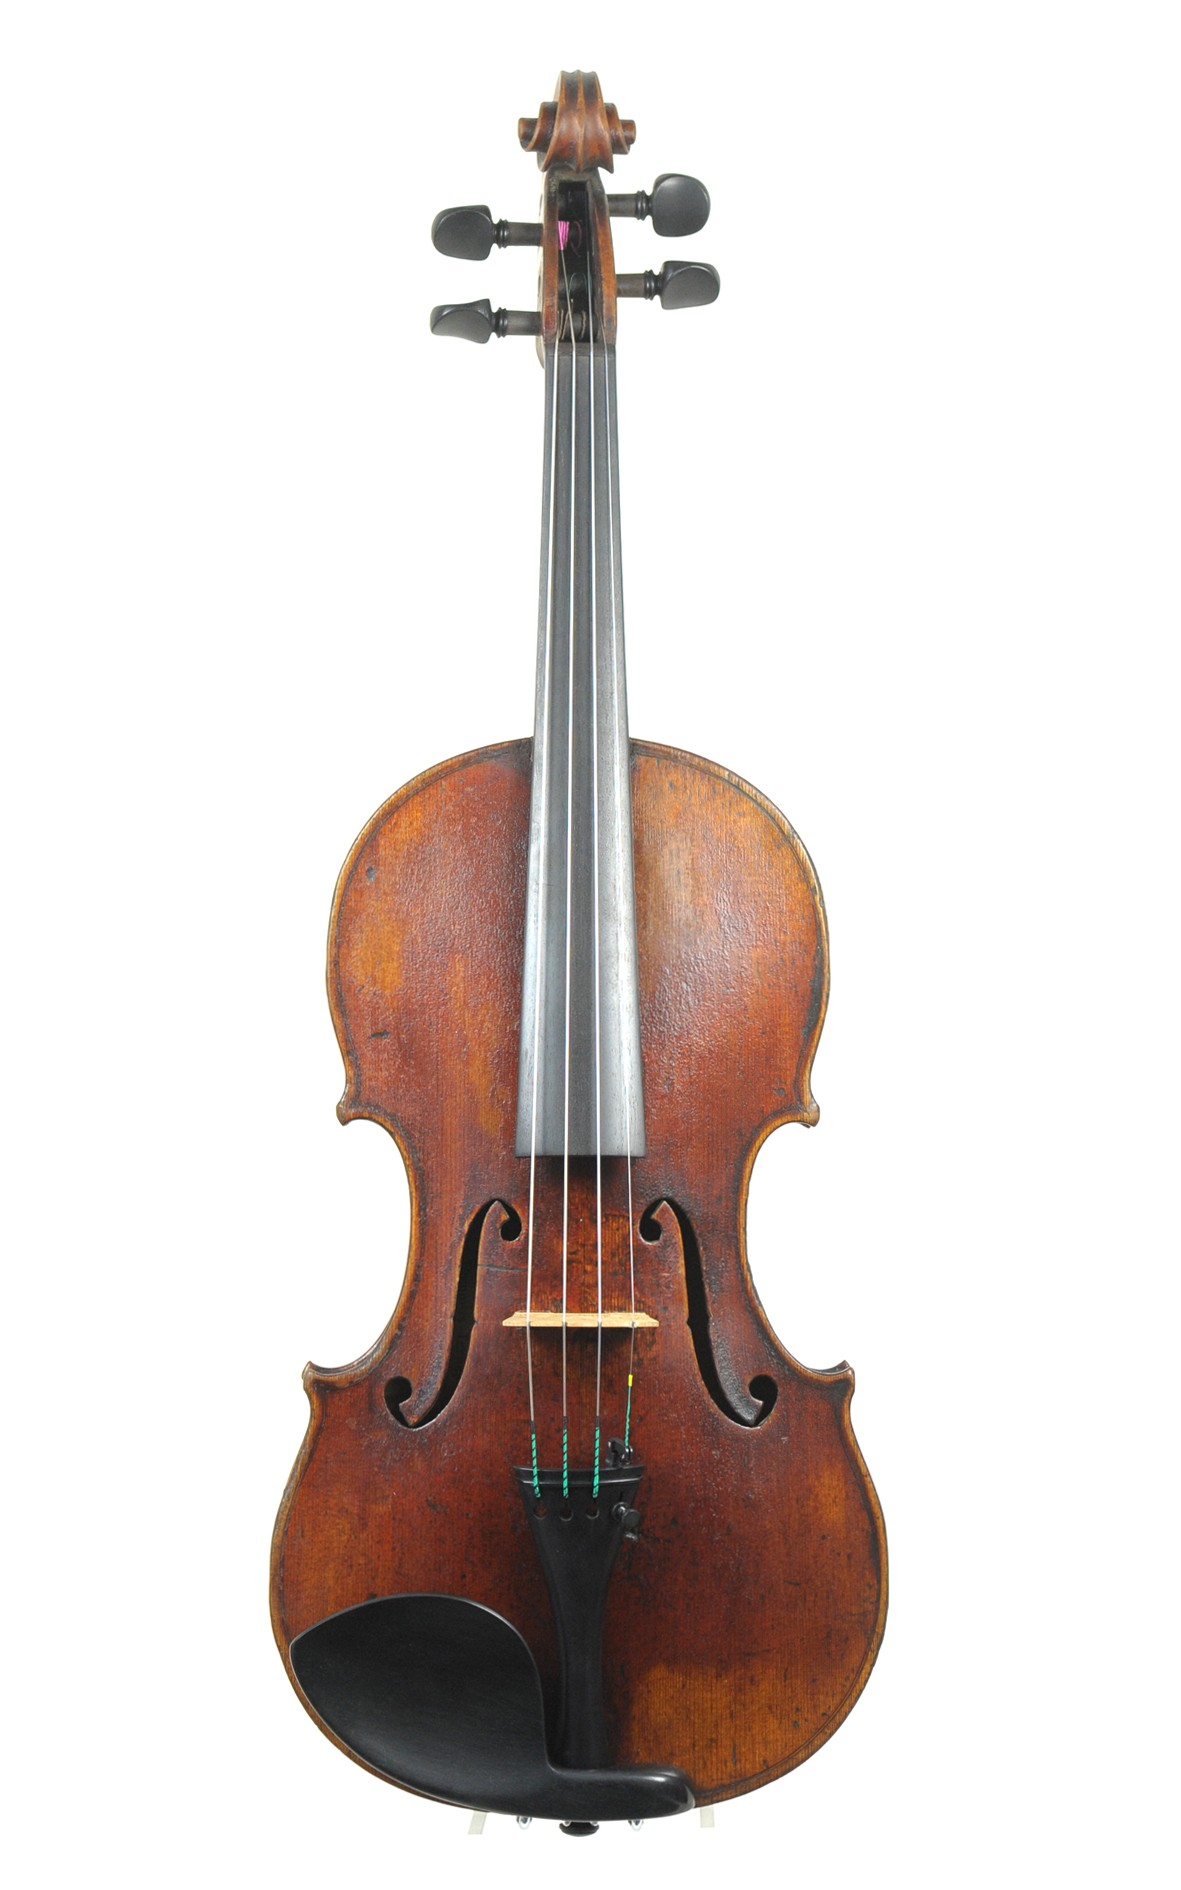 Fine French violin by Francois Caussin - Vuillaume copy